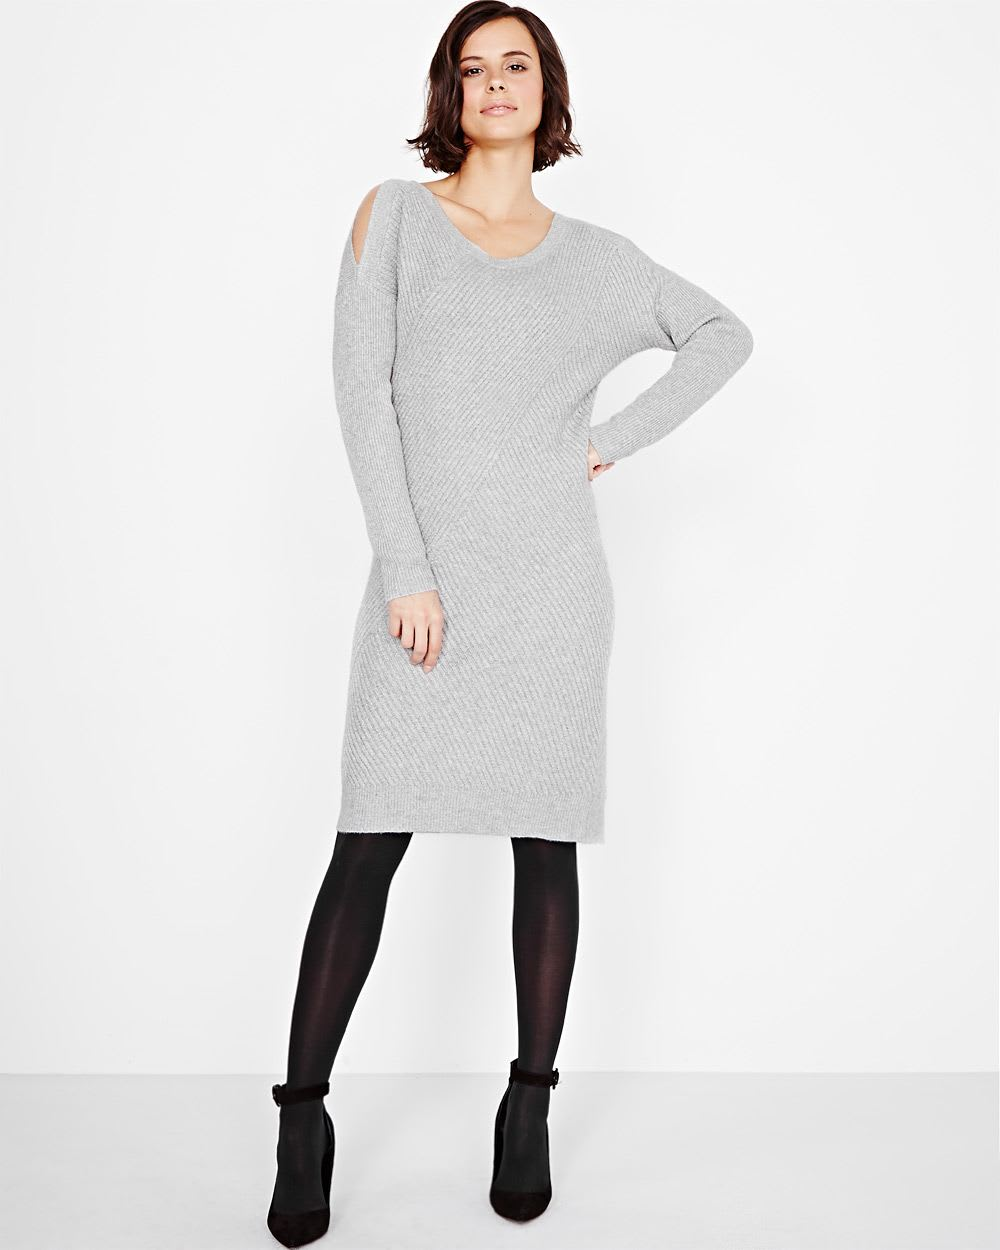 09c55e2966 Fitted sweater dress with shoulder slits